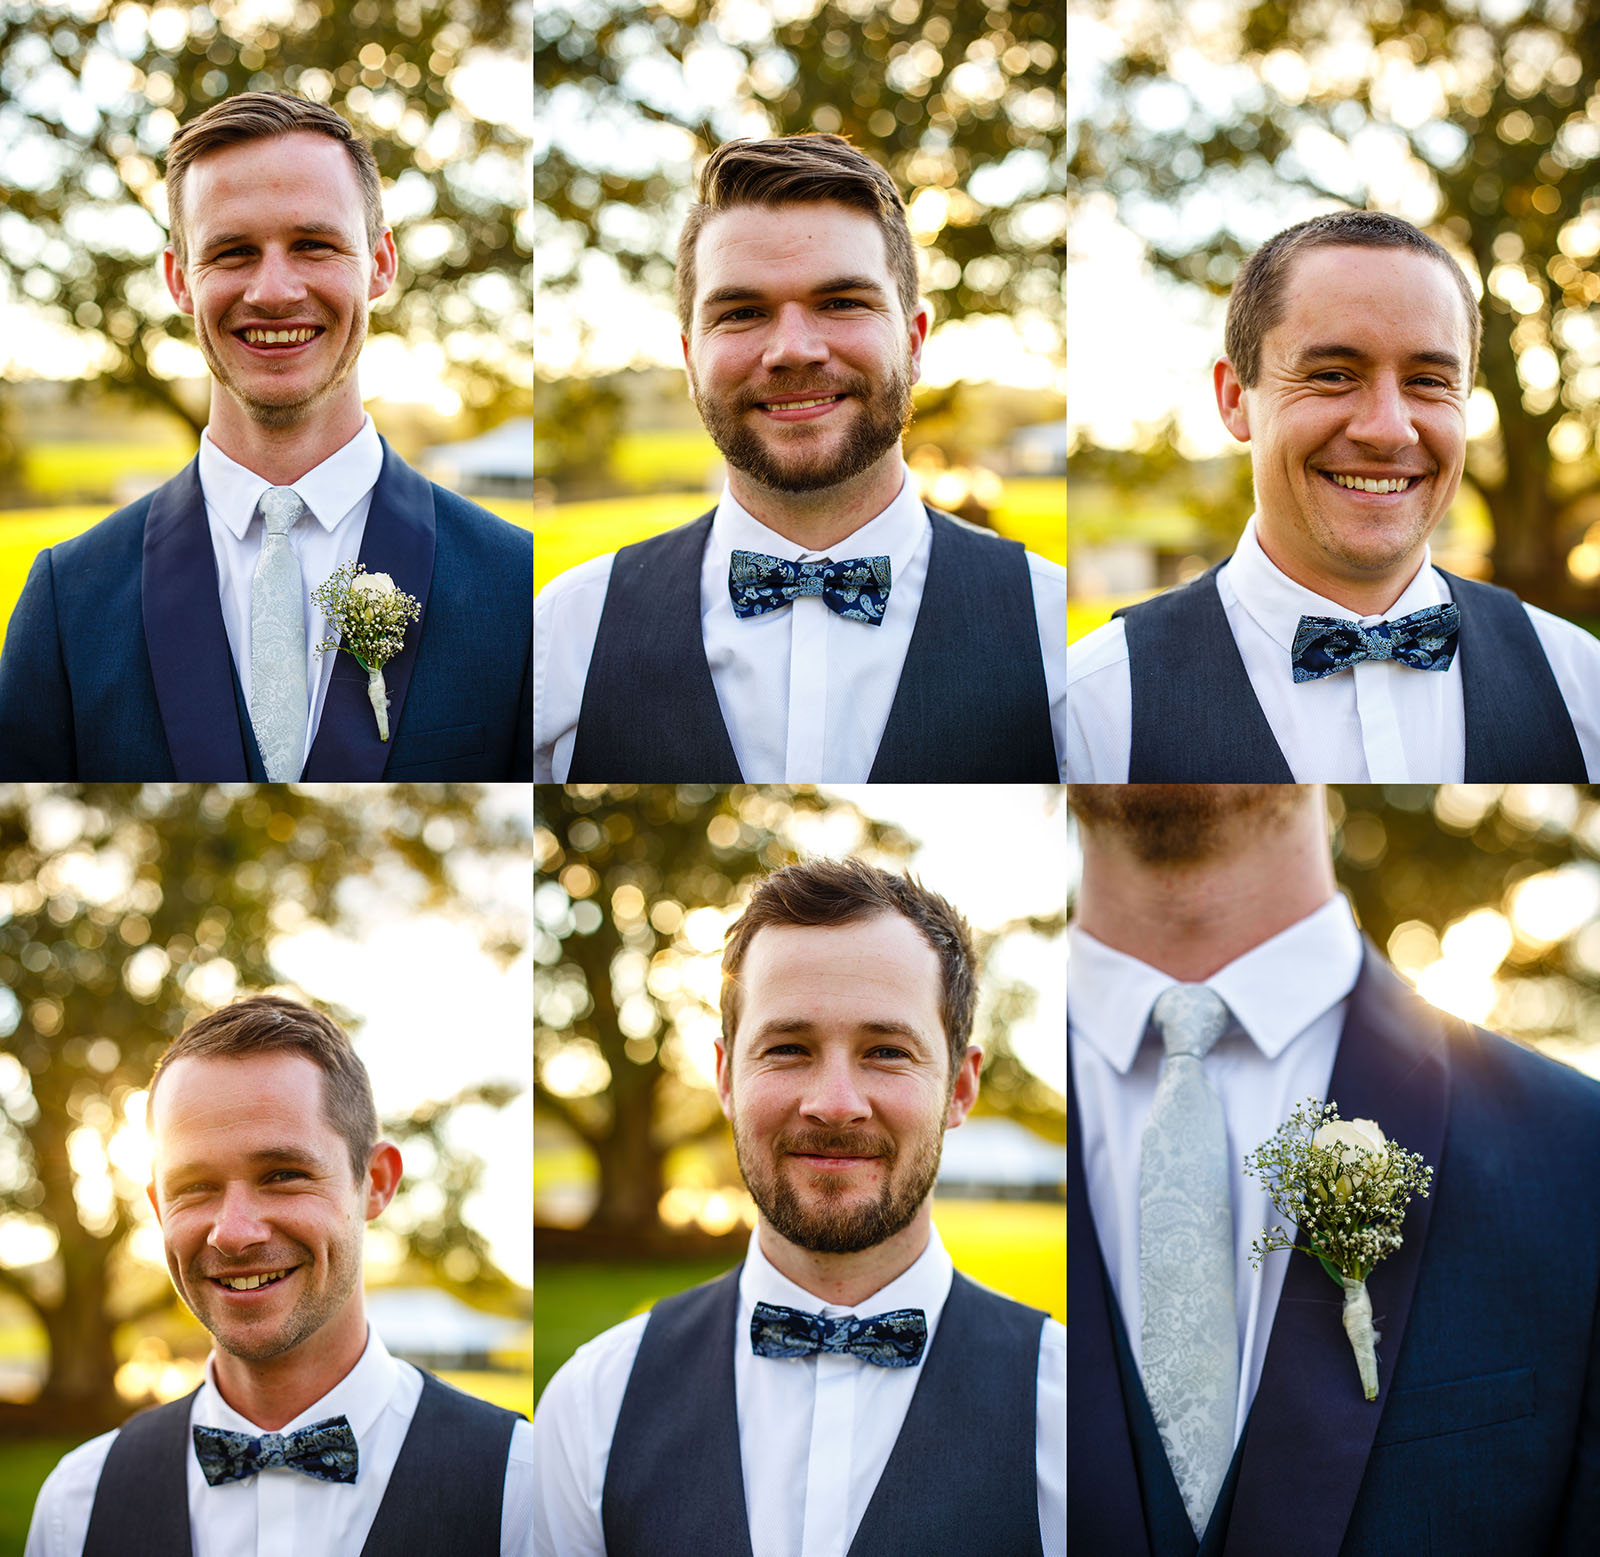 mount_tamborine_wedding_photographer_237